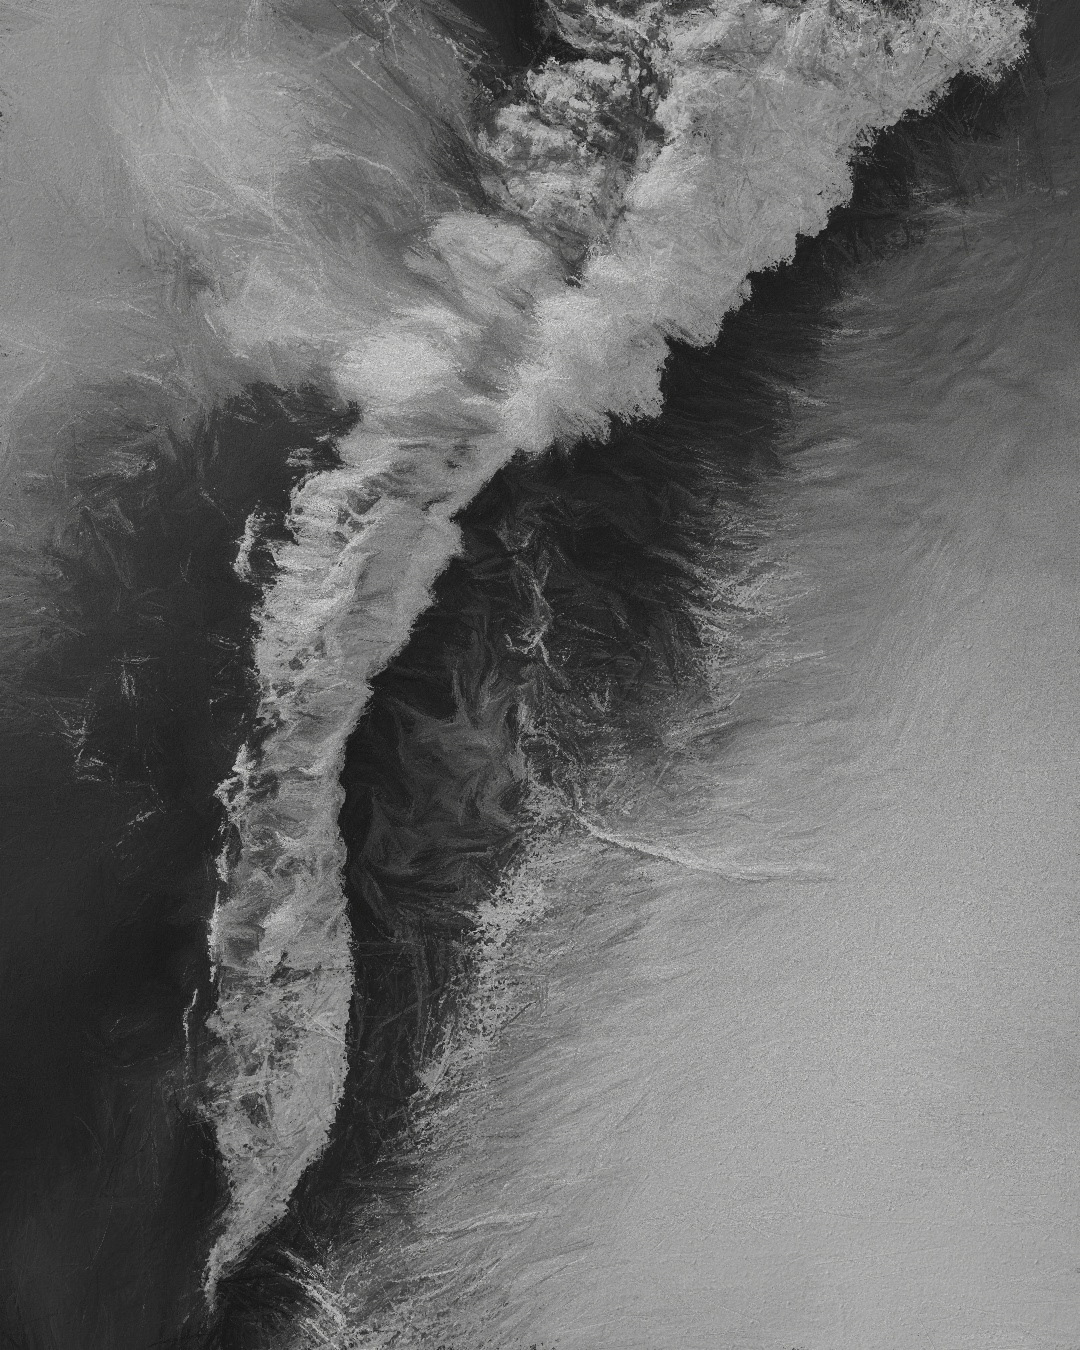 vagues DANCE WITH WAVES OCEAN FROM ABOVE pencil drawings bnw monochrome NVENTFISCHER